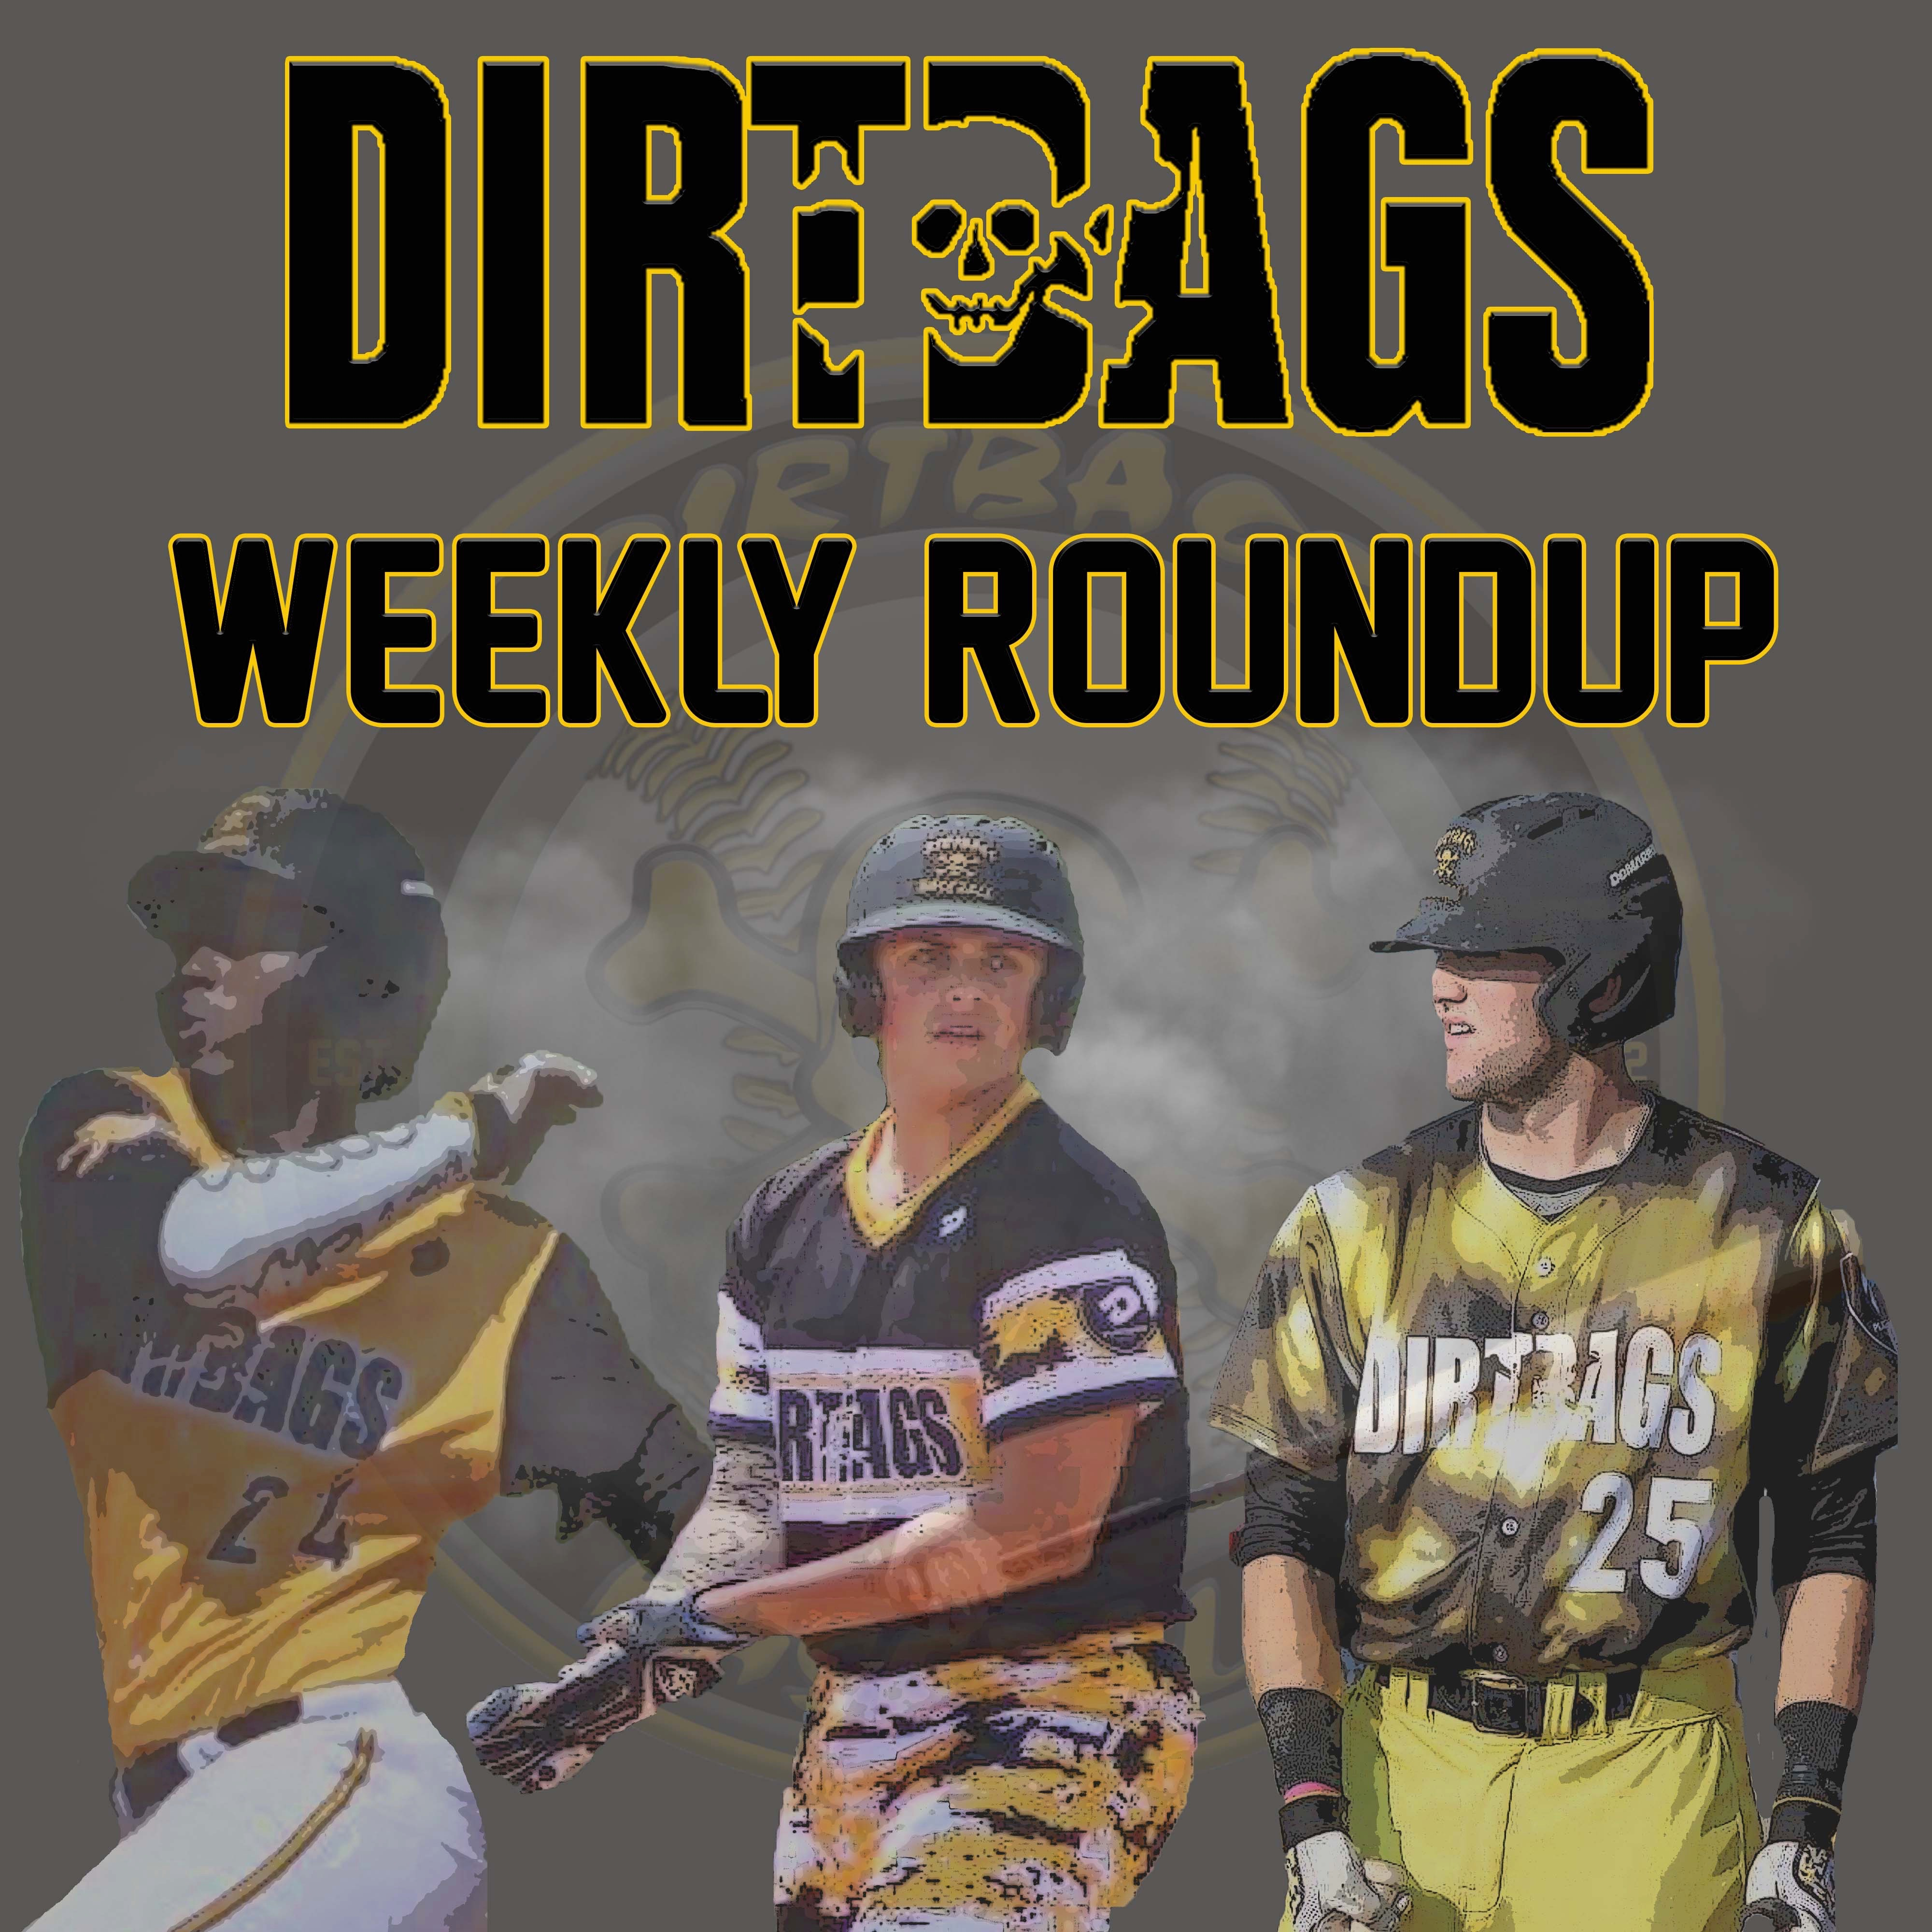 Dirtbag Weekly RoundUp